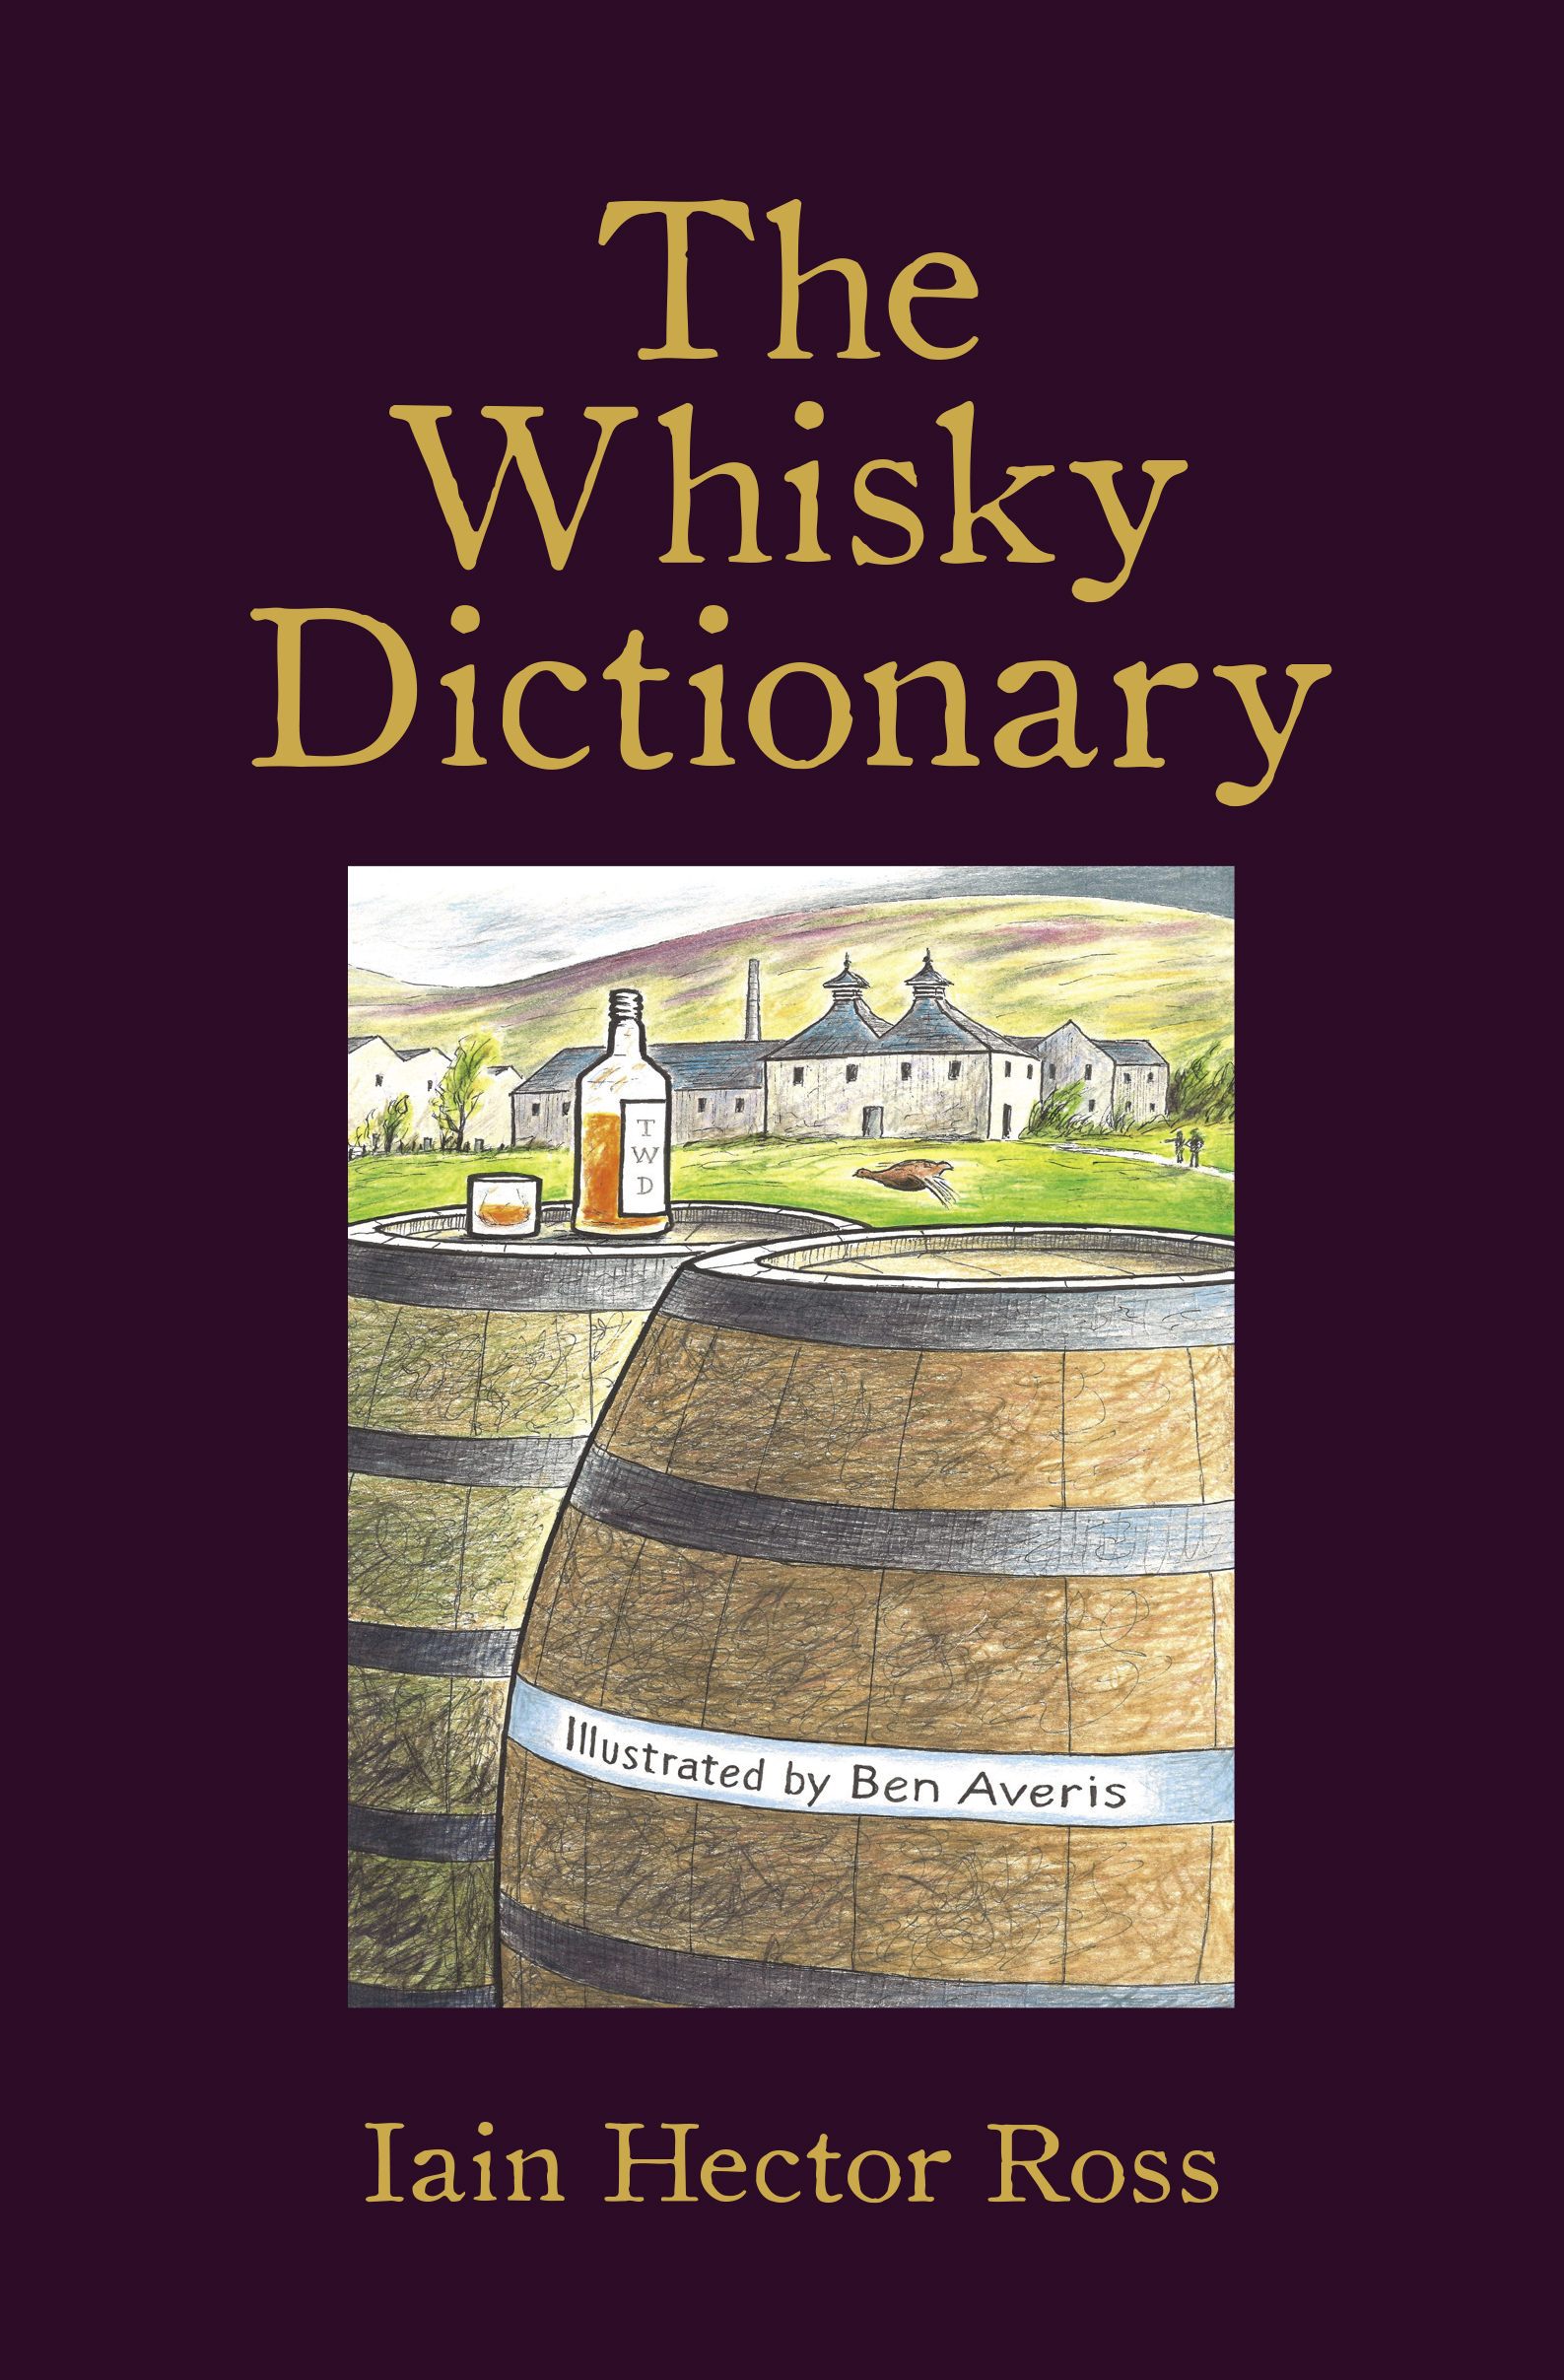 The Whisky Dictionary Q&A